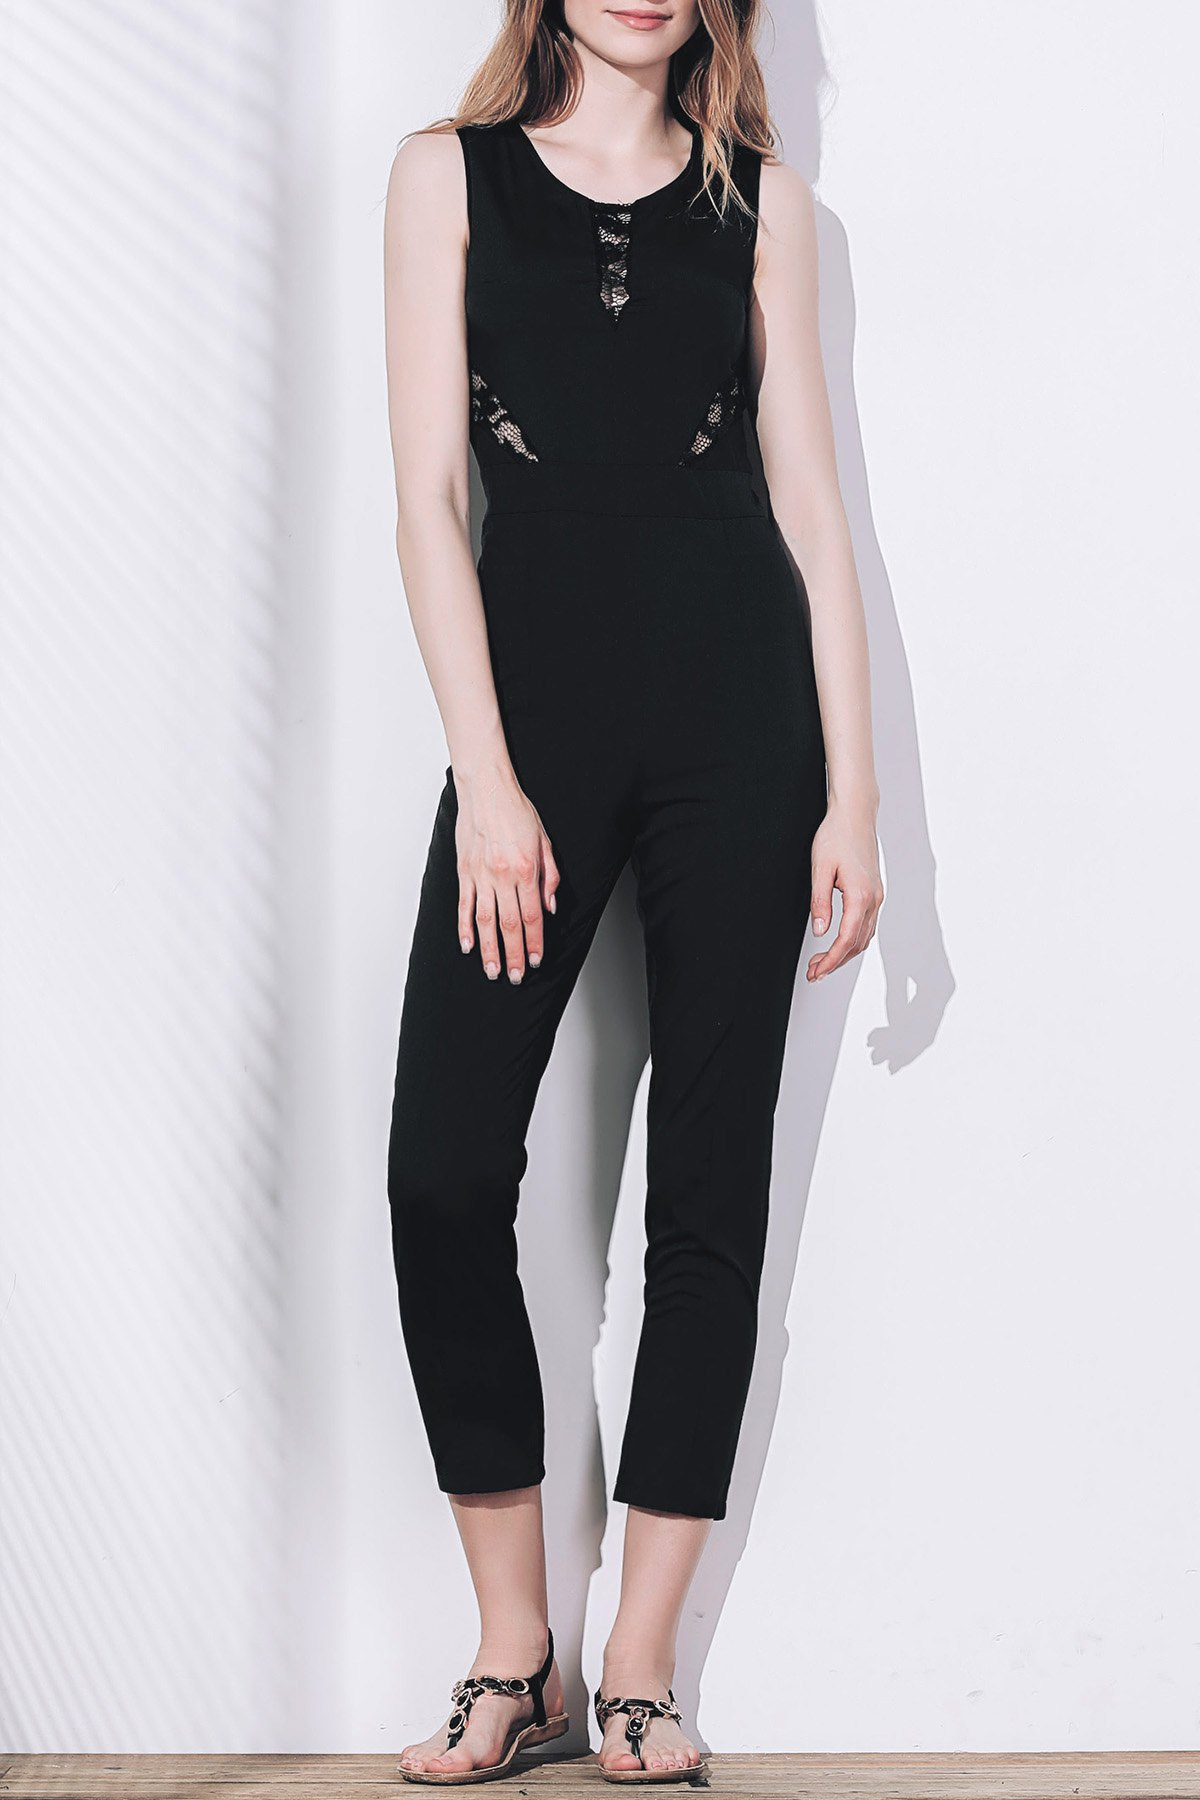 Stylish Women's Round Collar Sleeveless Lace Spliced Jumpsuit